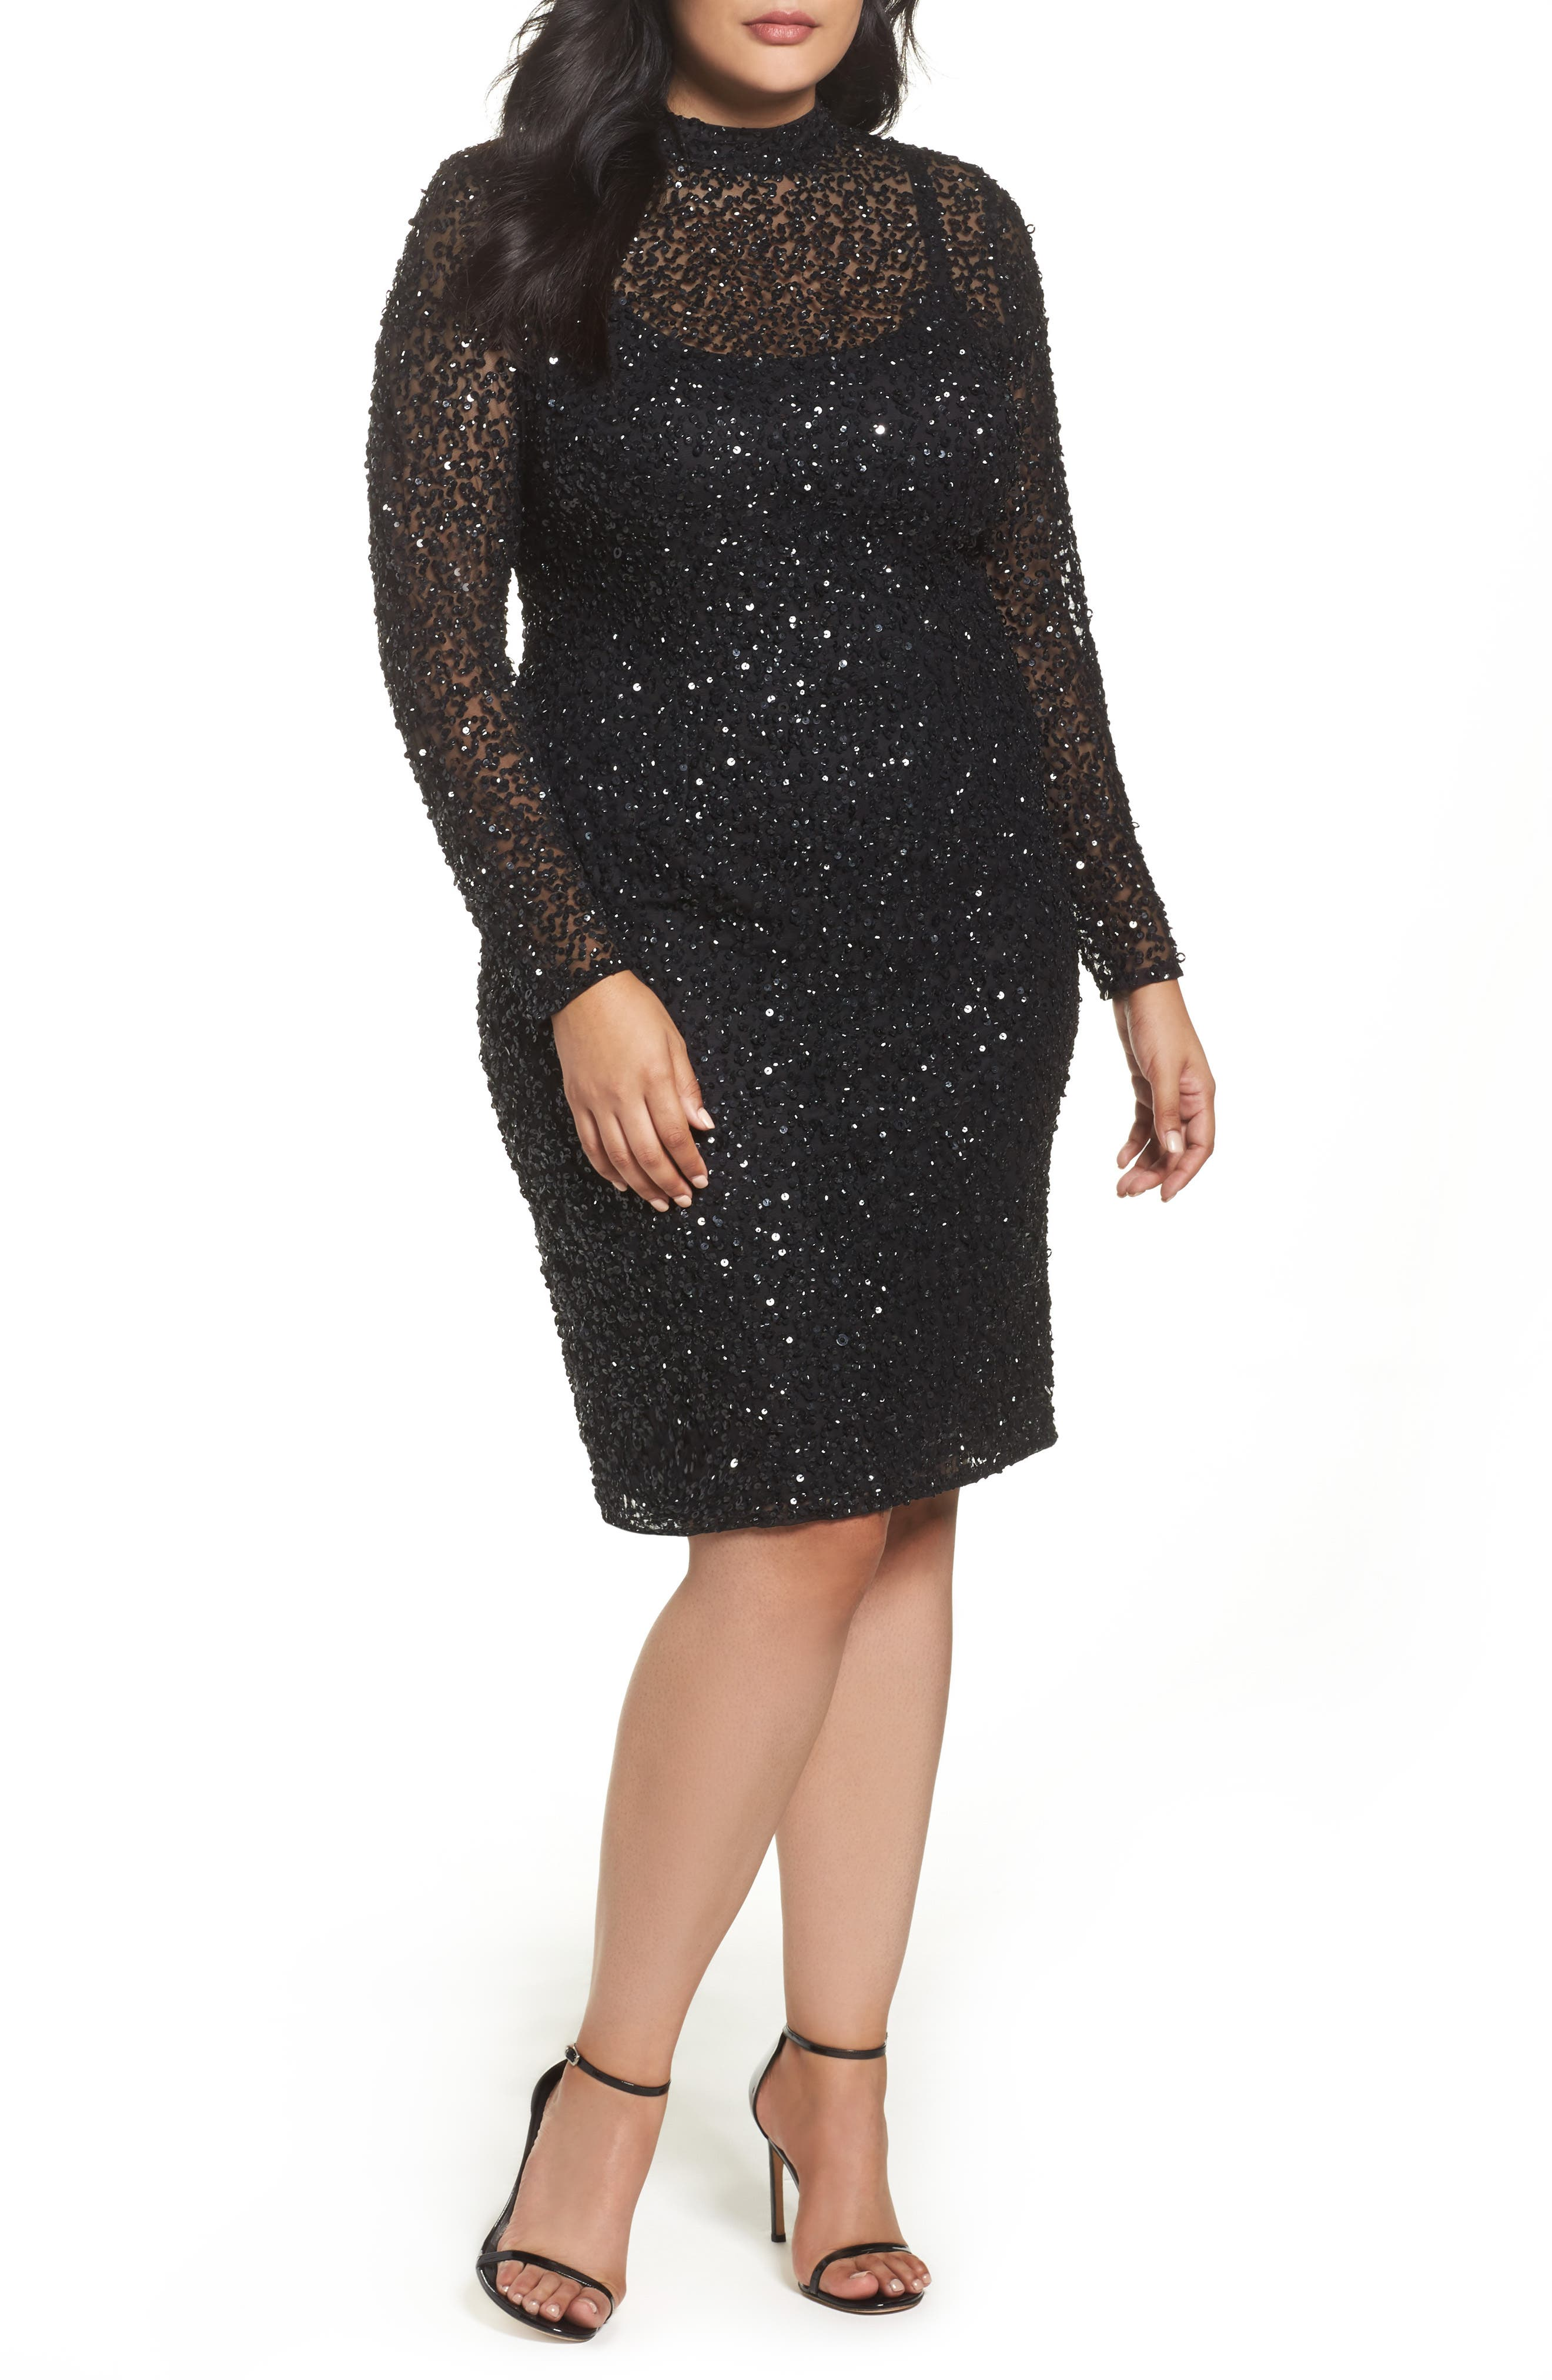 Alternate Image 1 Selected - Adrianna Papell Mock Neck Sequin Sheath Dress (Plus Size)